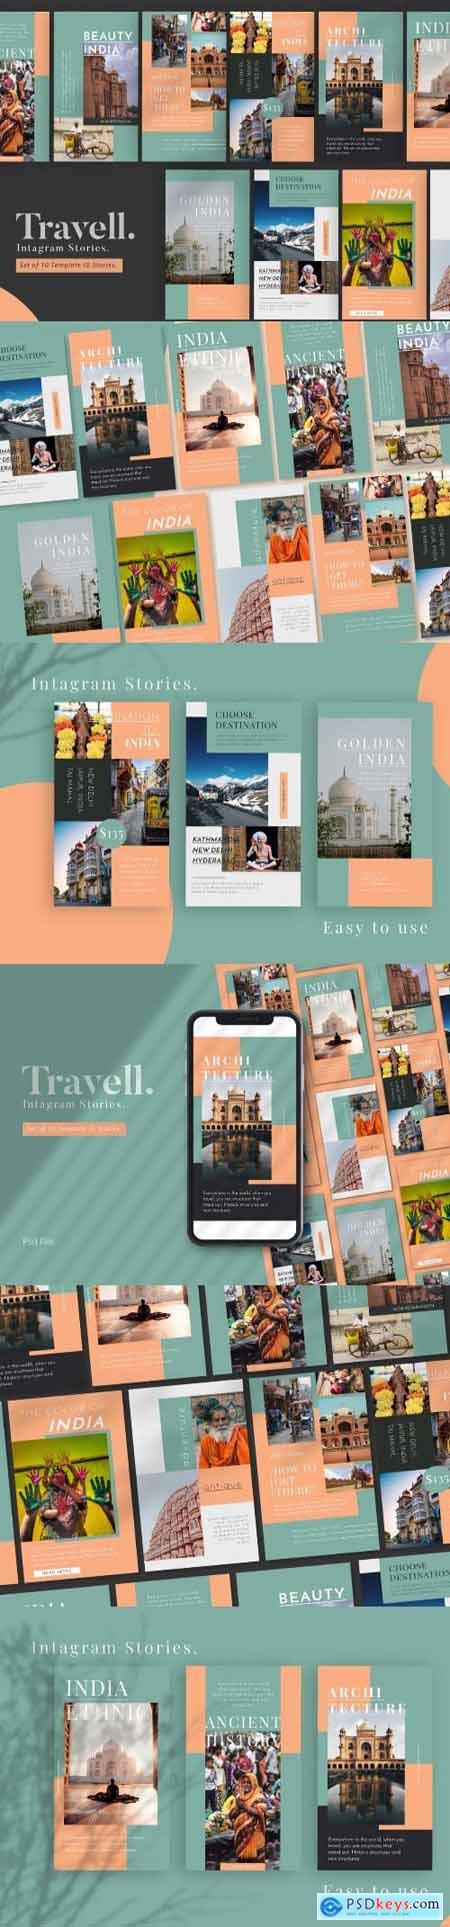 Travel Promotion Instagram Stories Templat